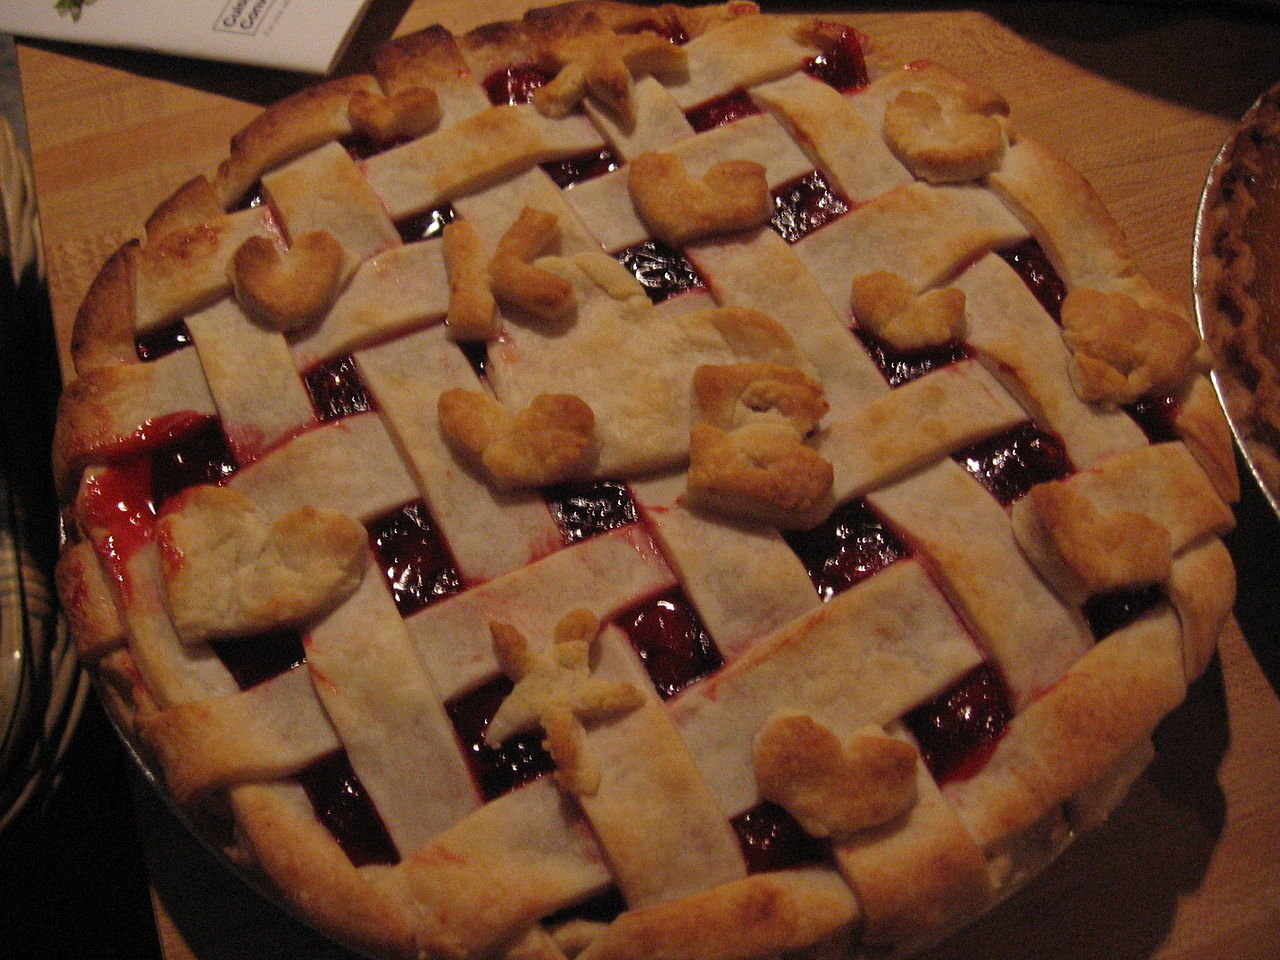 FileLattice cherry pie with pastryshell decorations